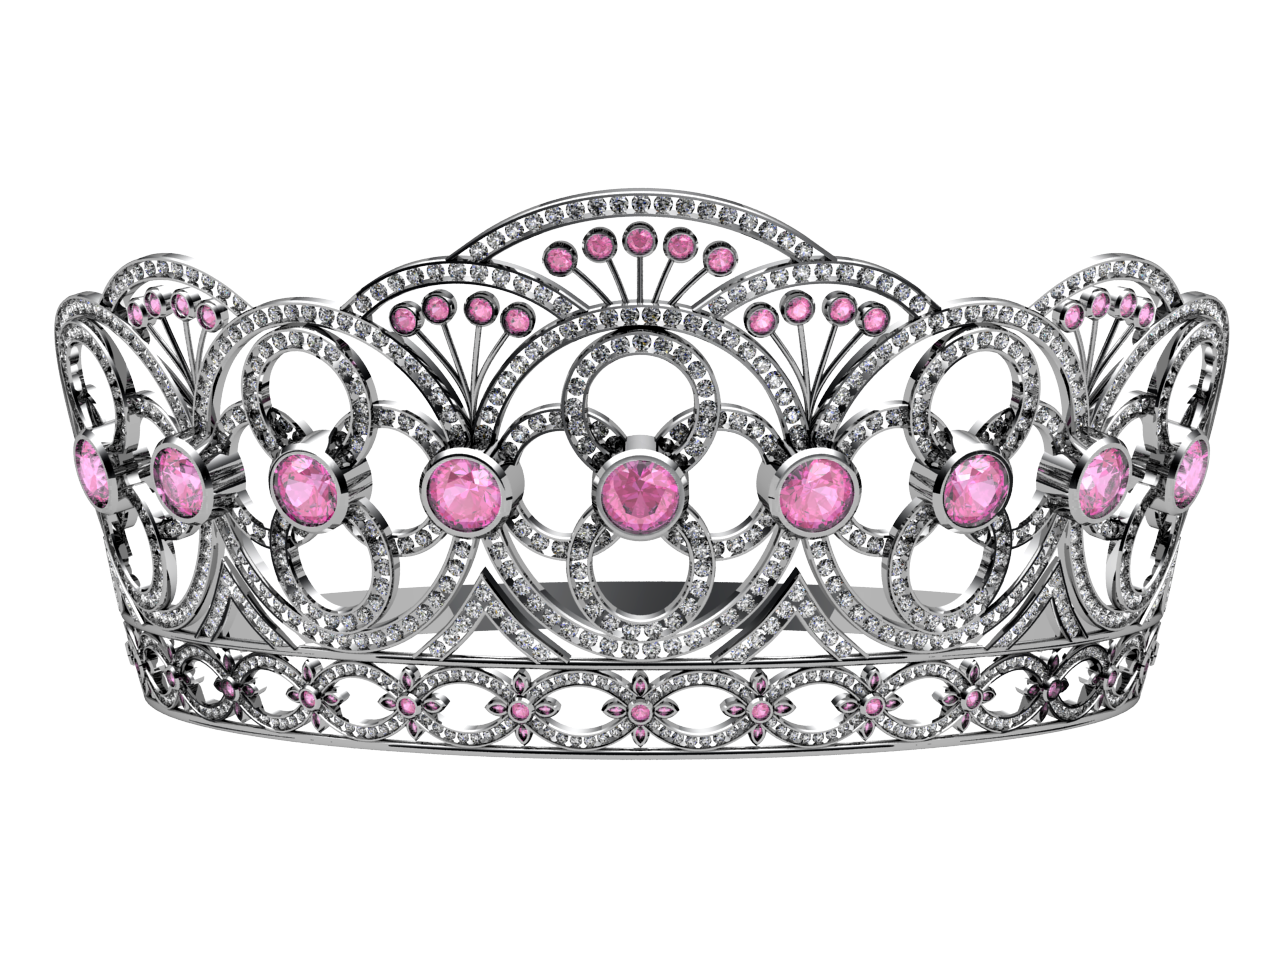 Beautiful images download image. Queen crown png graphic transparent